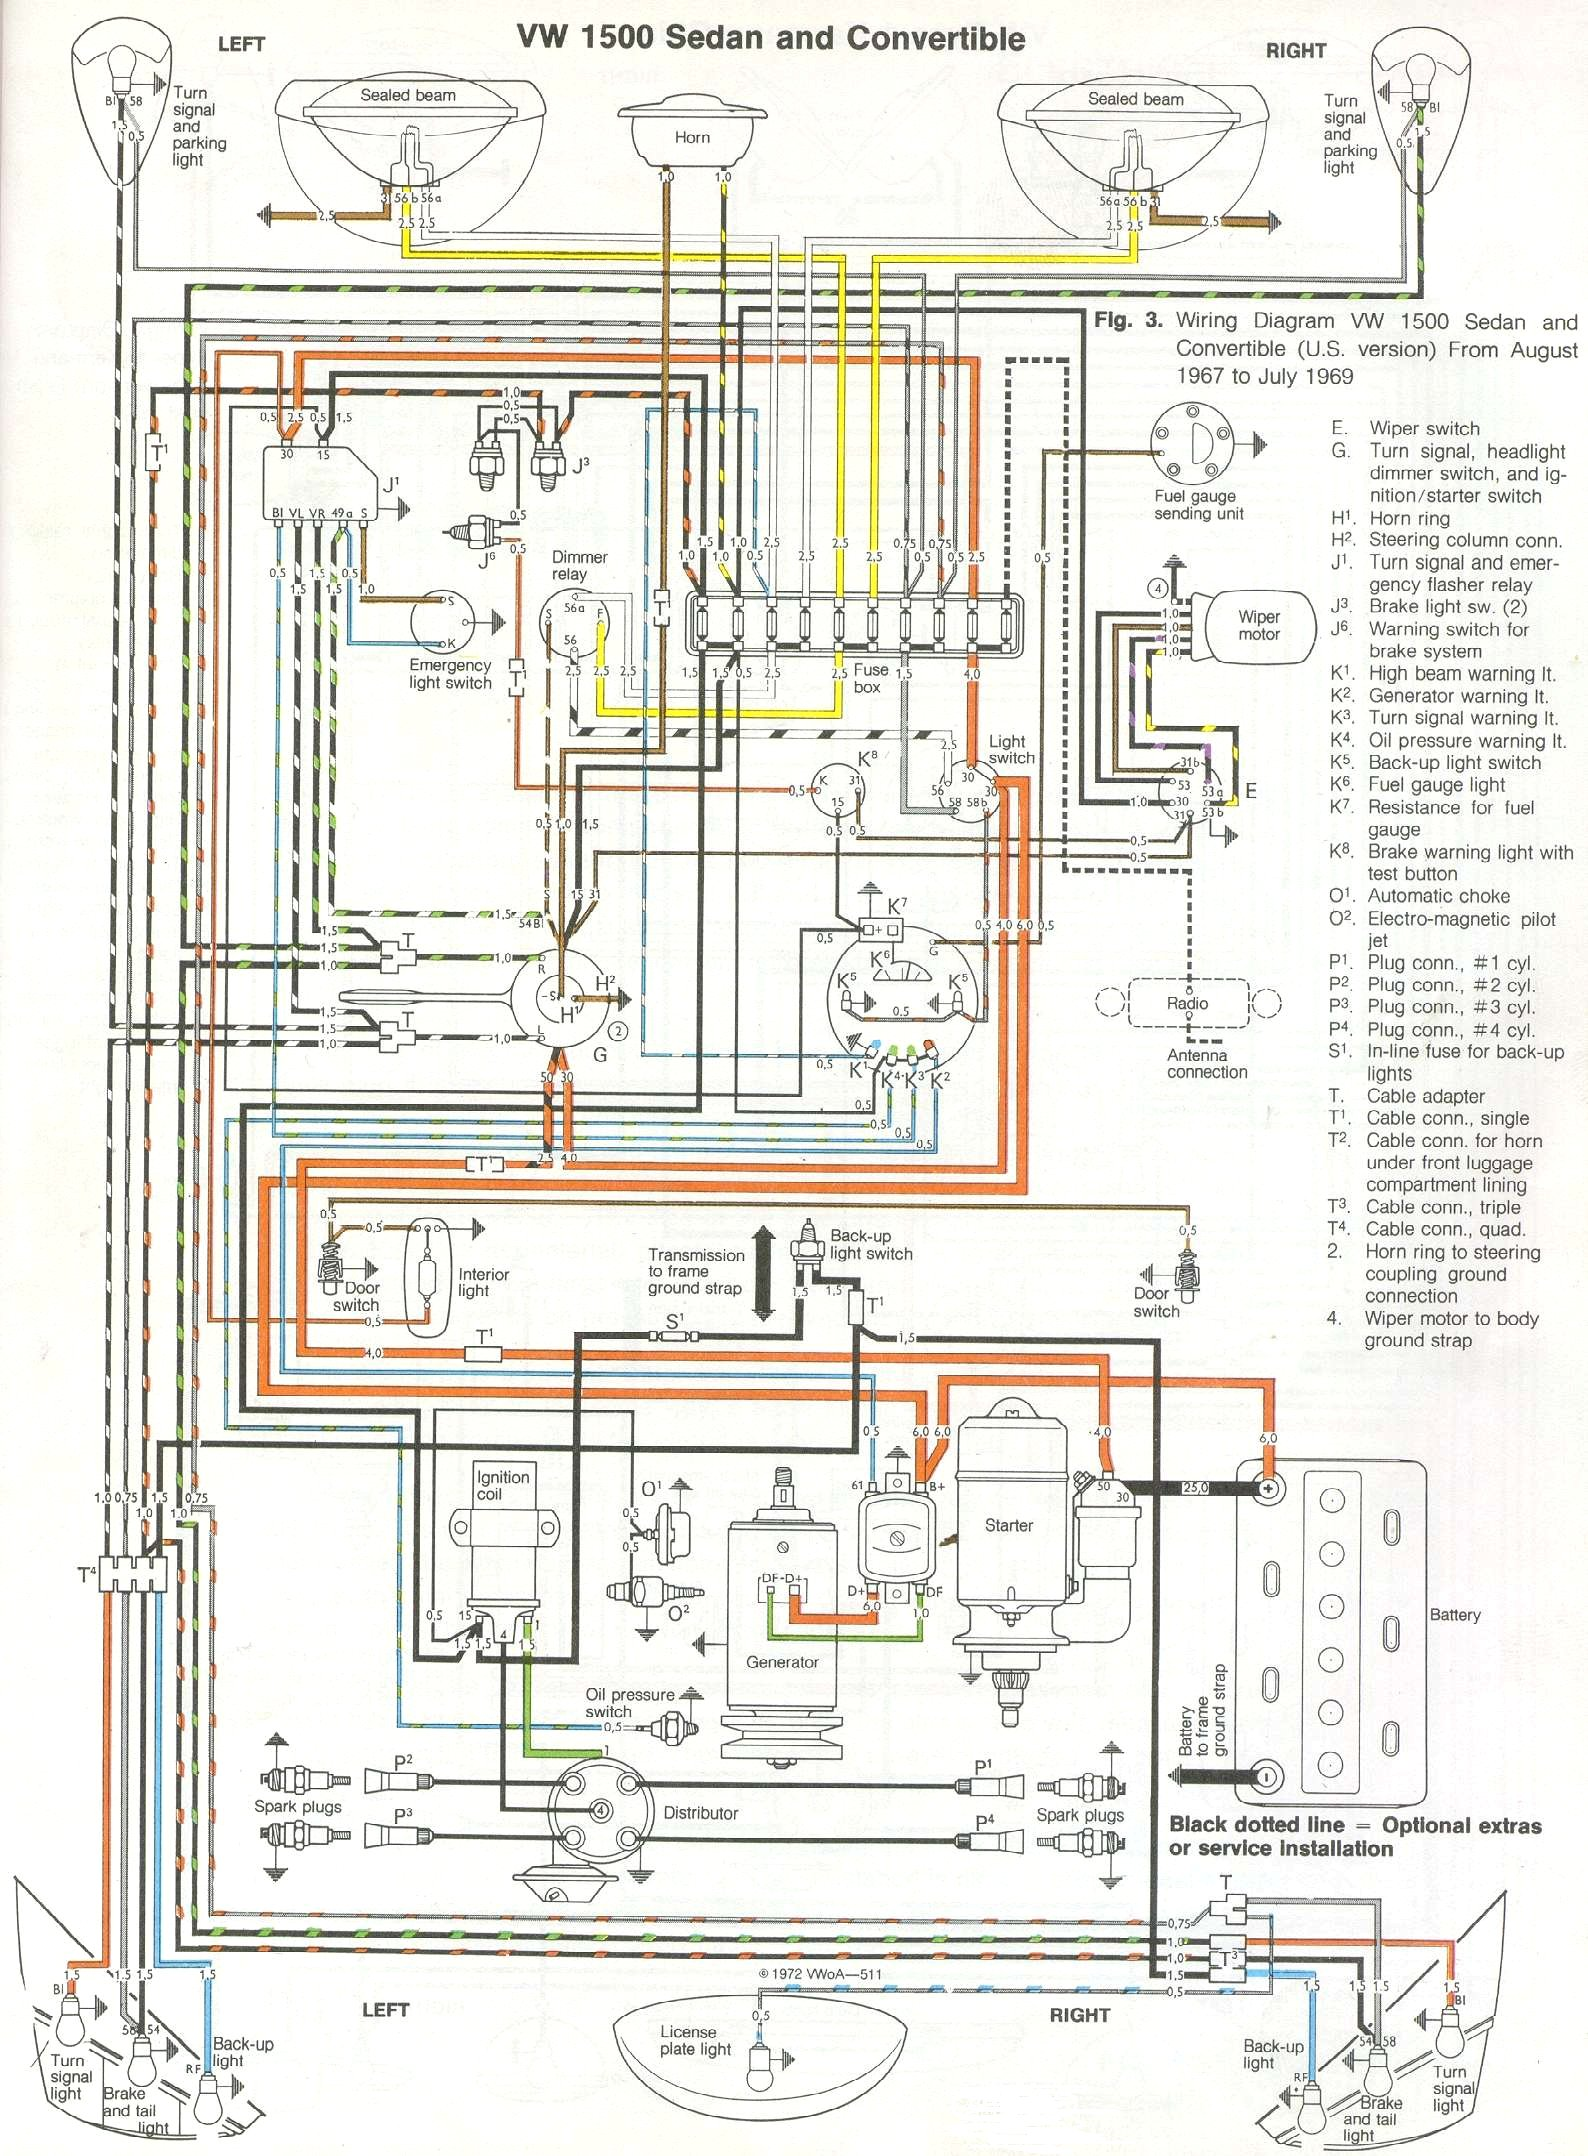 bug_6869 vw wiring harness diagram cj7 wiring harness diagram \u2022 wiring 1971 vw bus wiring diagram at love-stories.co